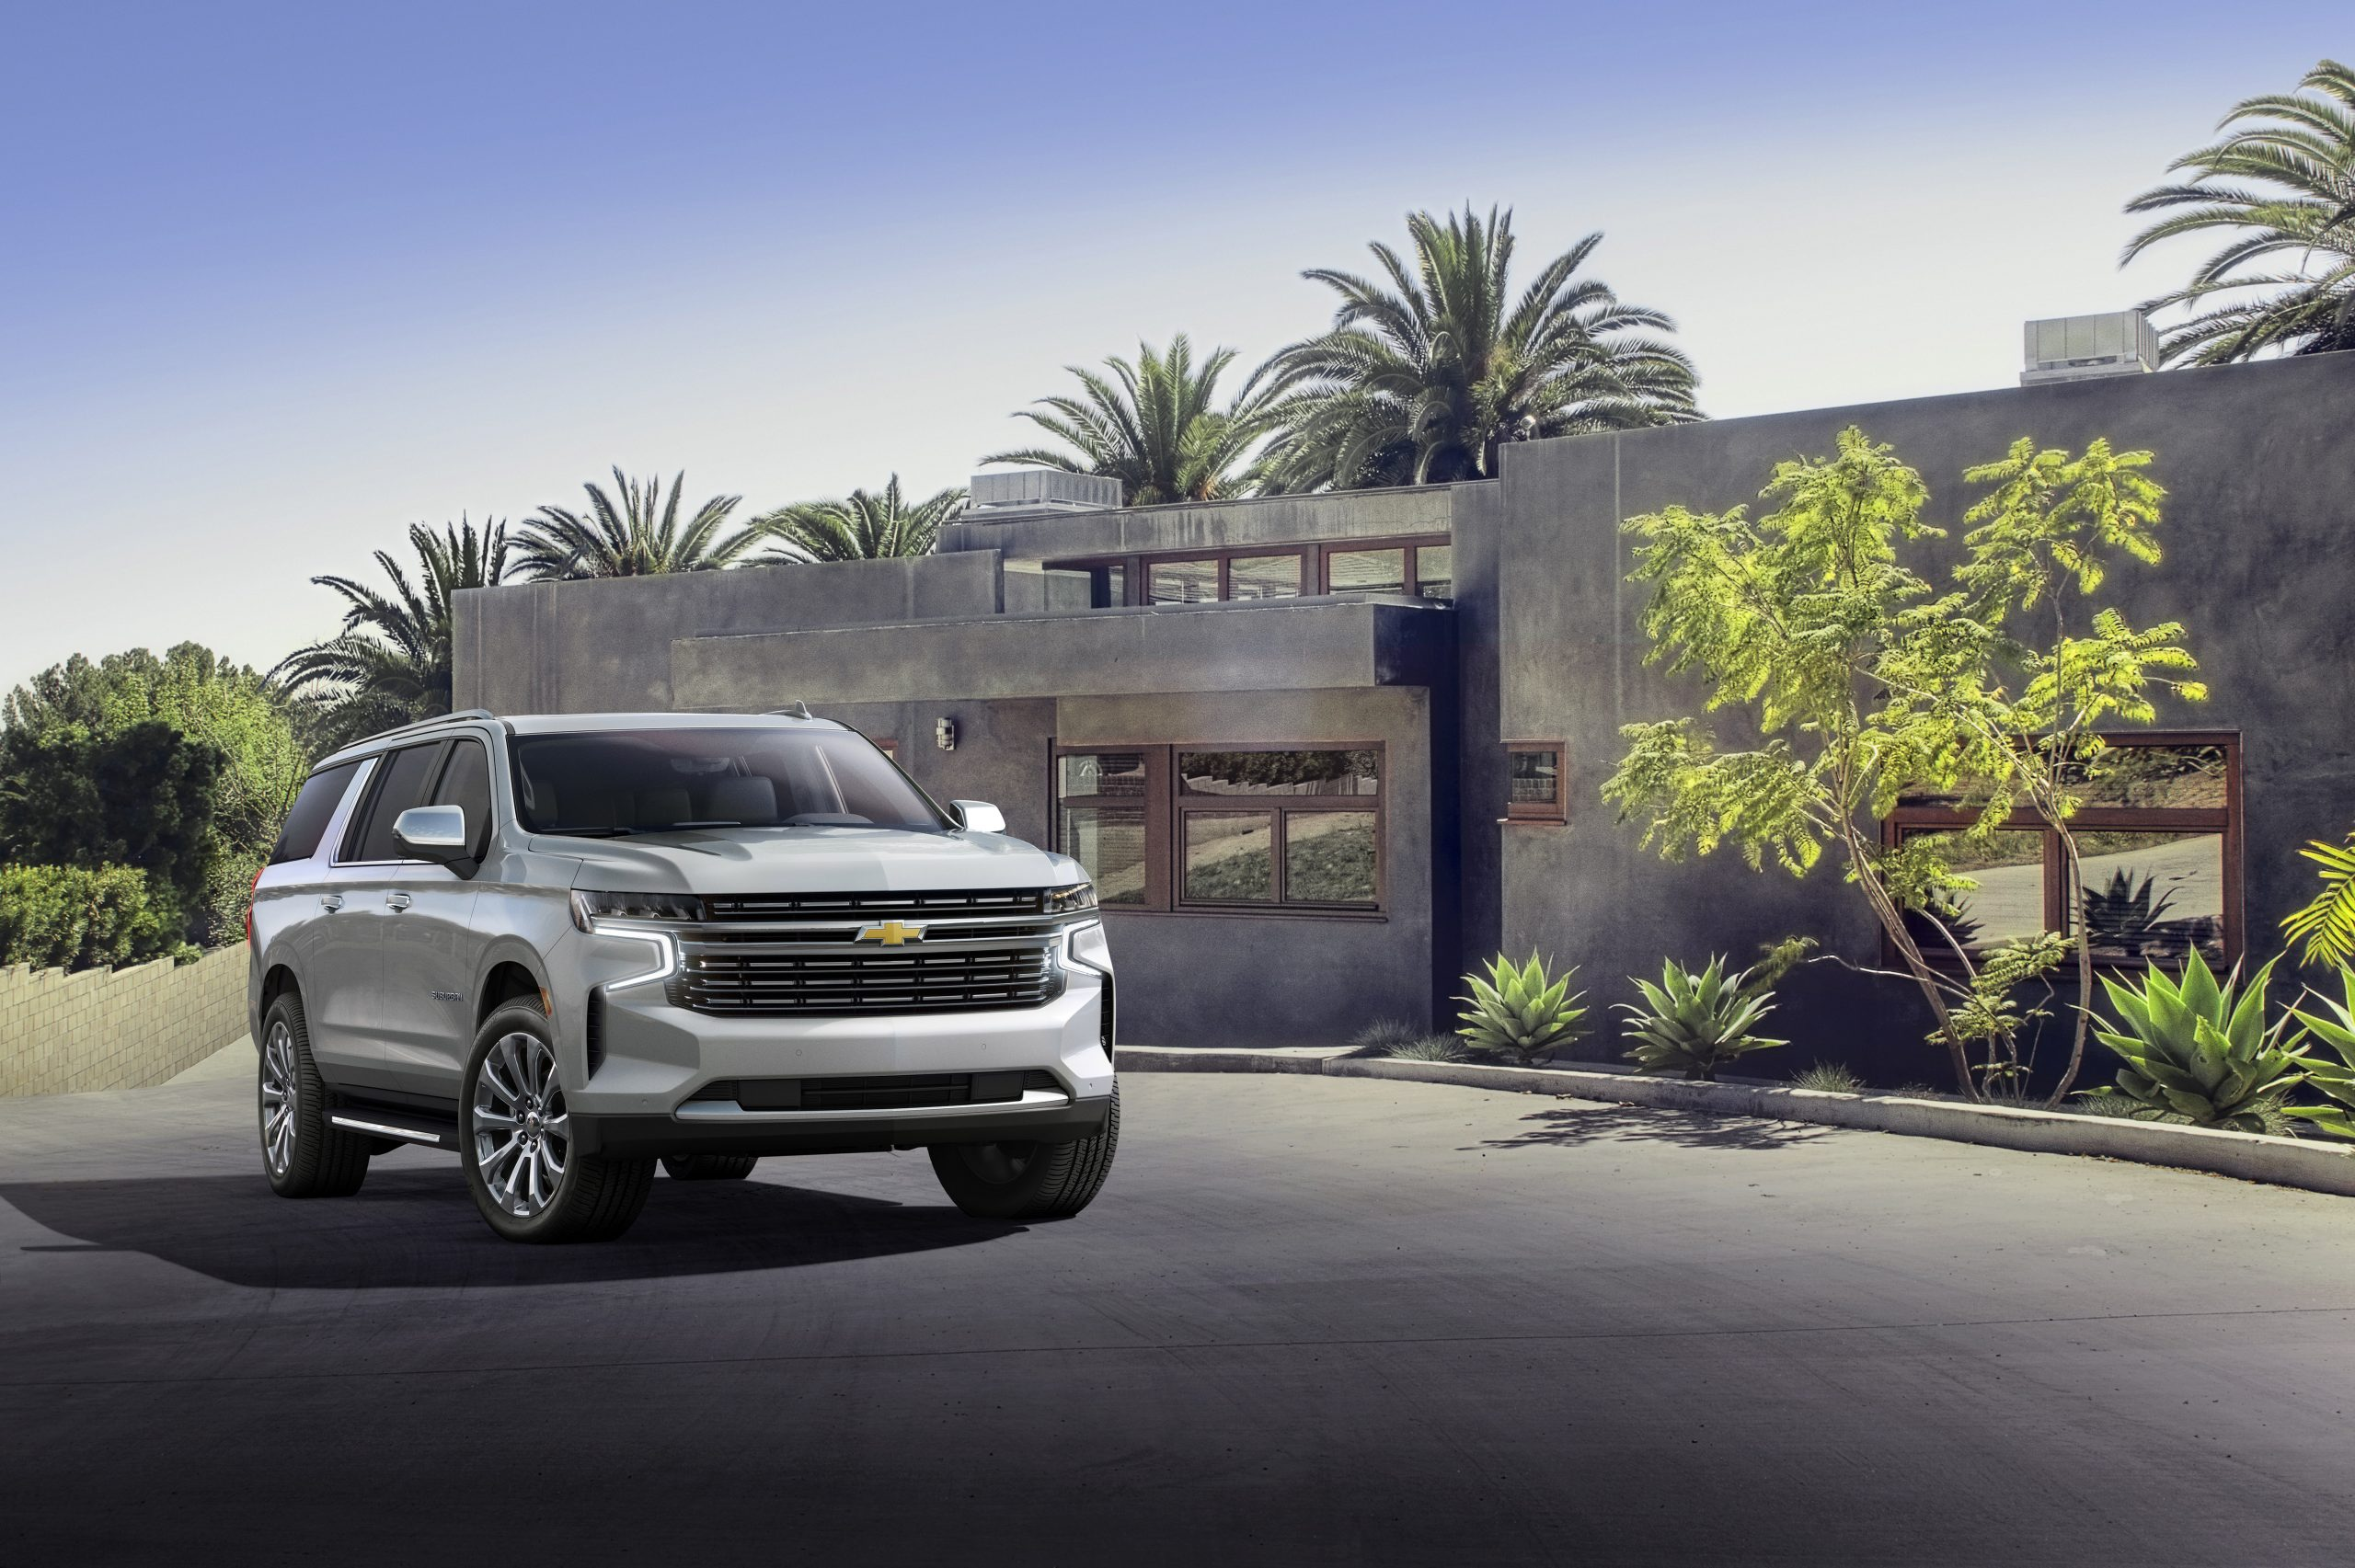 Chevrolet Introduces All-New 2021 Tahoe And Suburban 2021 Chevy Suburban Options, Problems, Parts